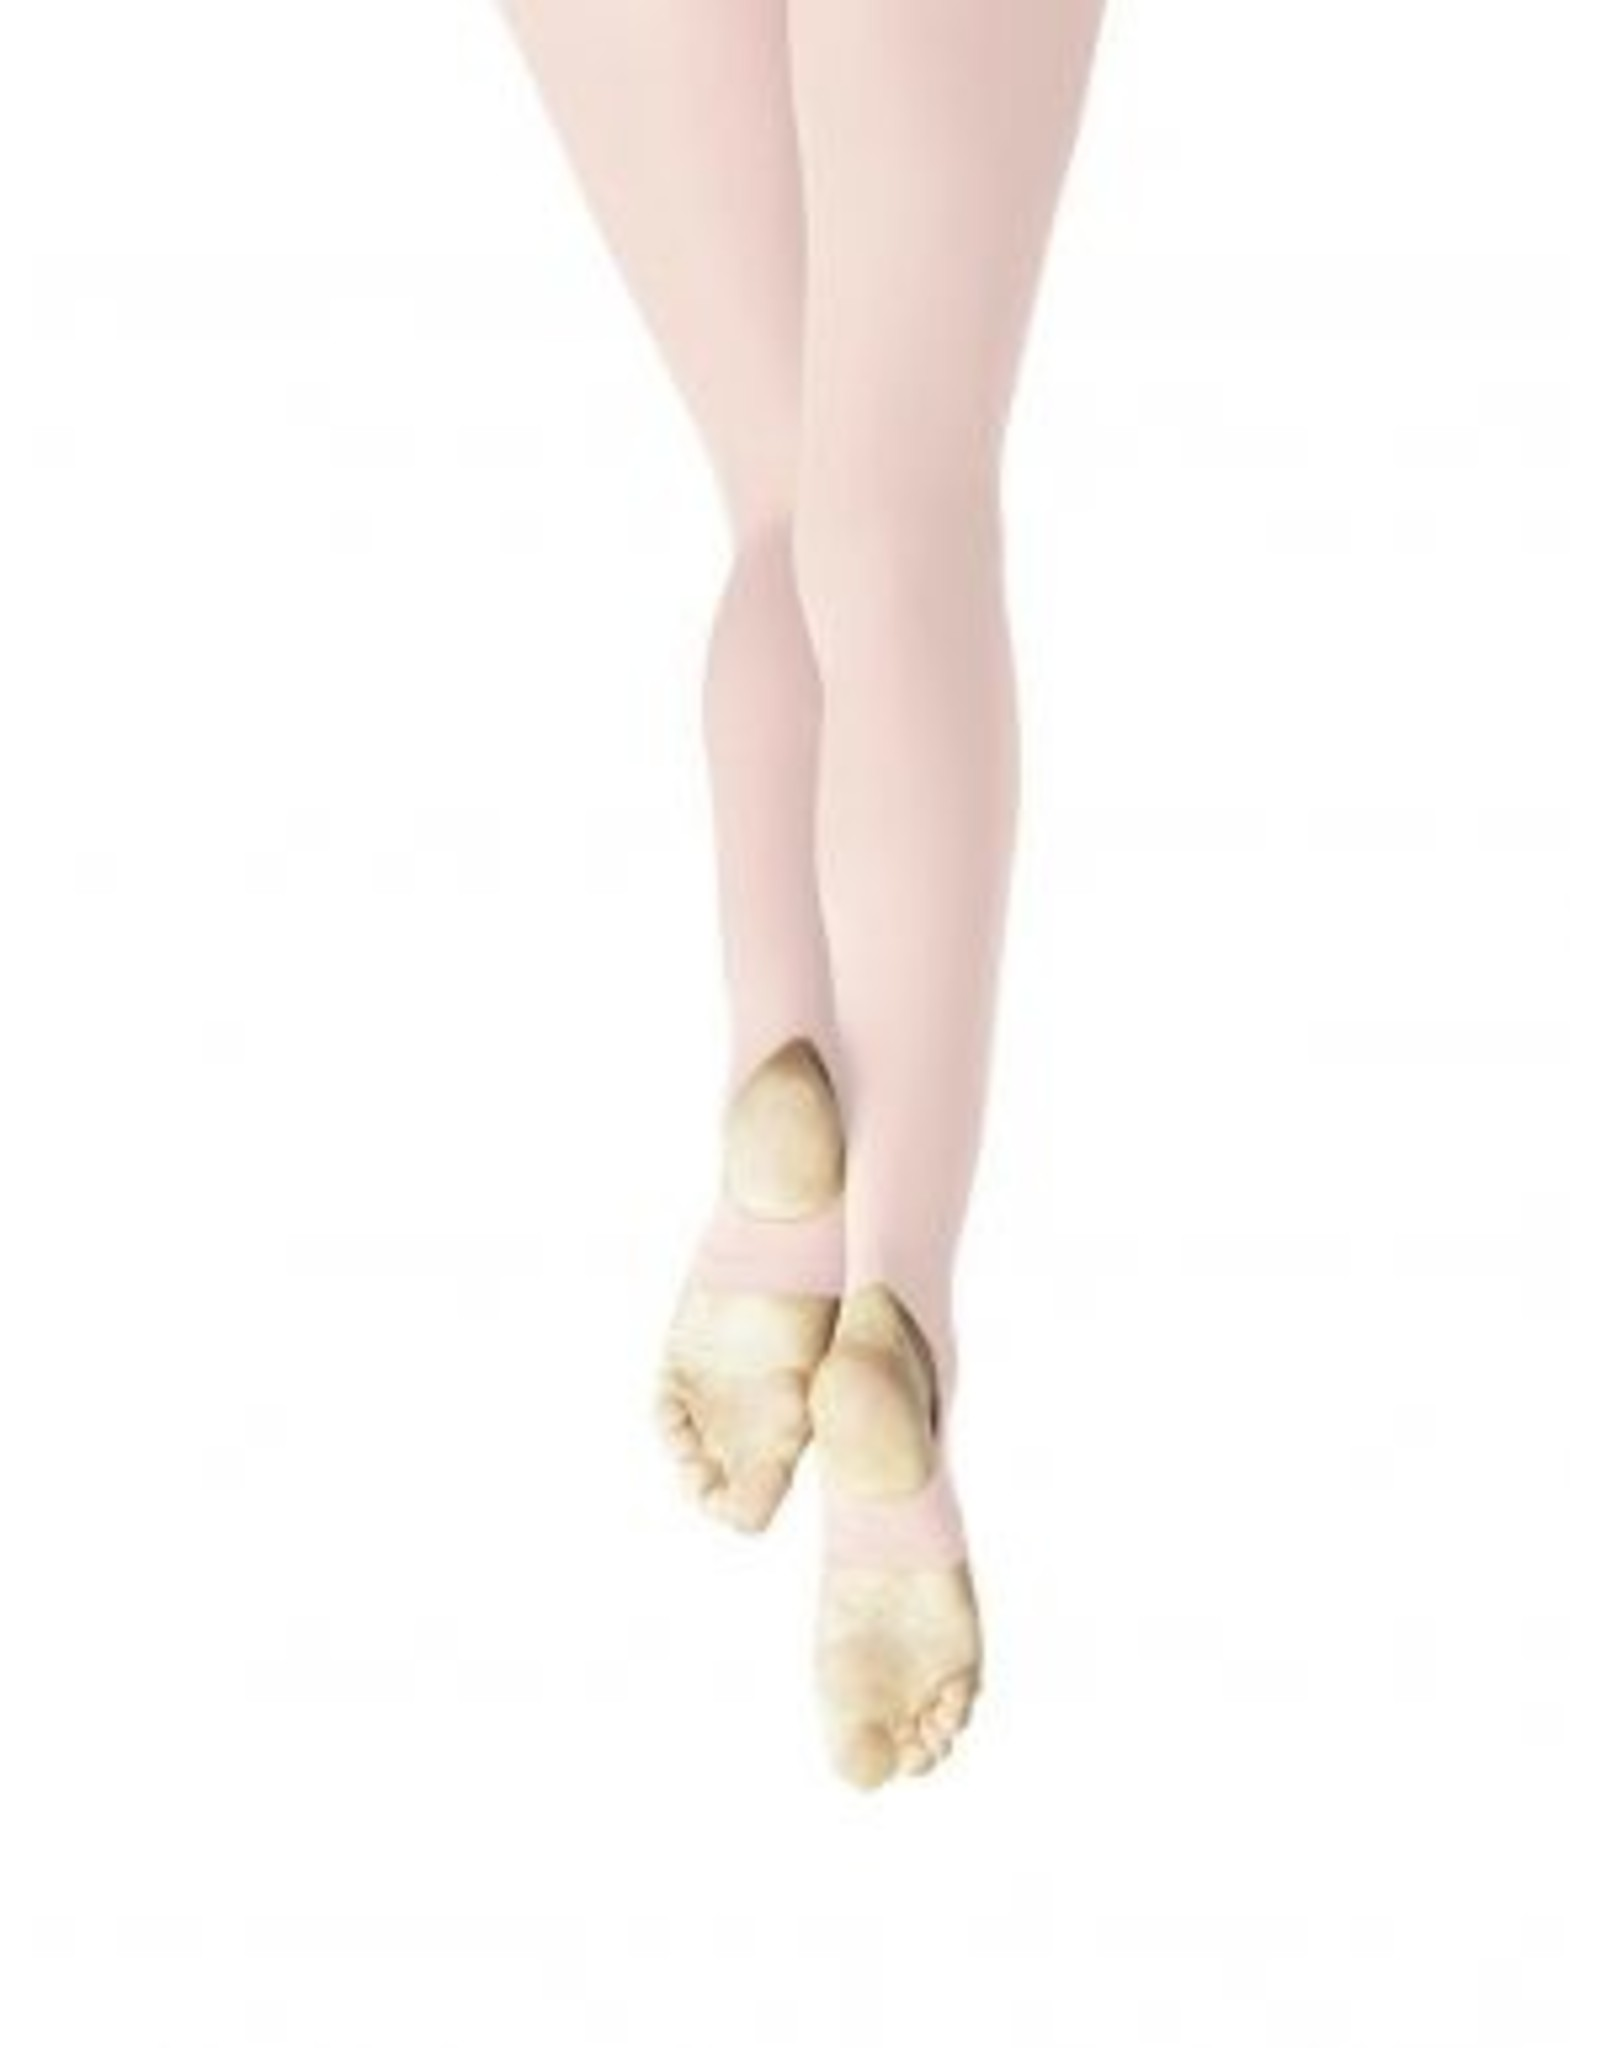 Capezio / Bunheads Children's Ultra Soft Stirrup Tights (1961C) - 8-12